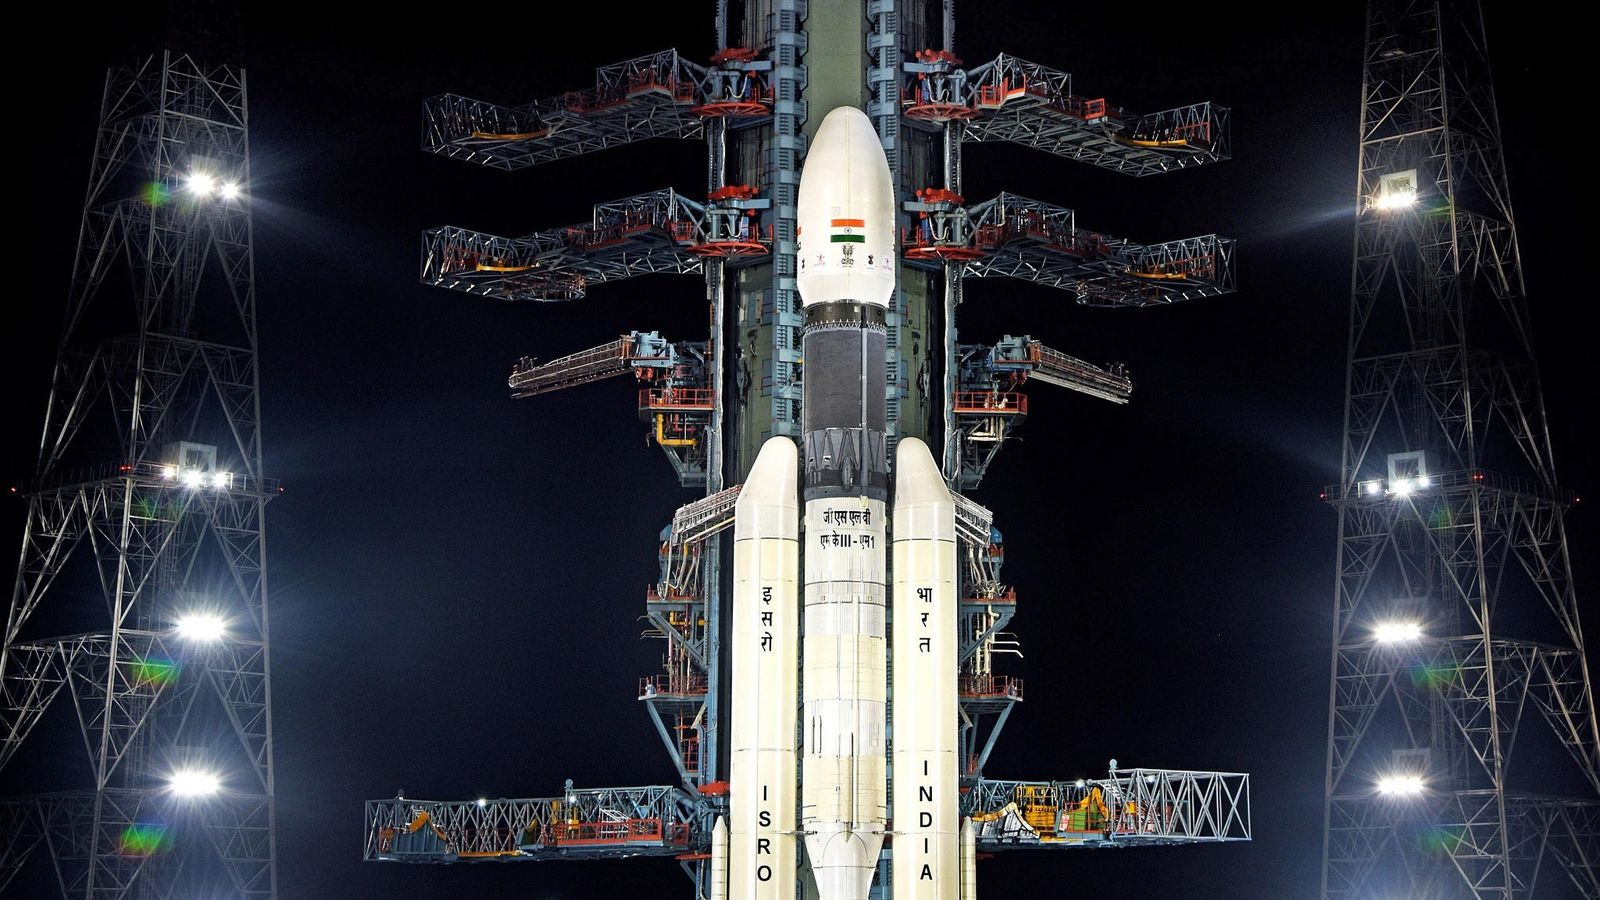 In July, India's Chandrayaan-2 mission launched toward the moon atop a GSLV MkIII-M1 rocket. Later today, ...